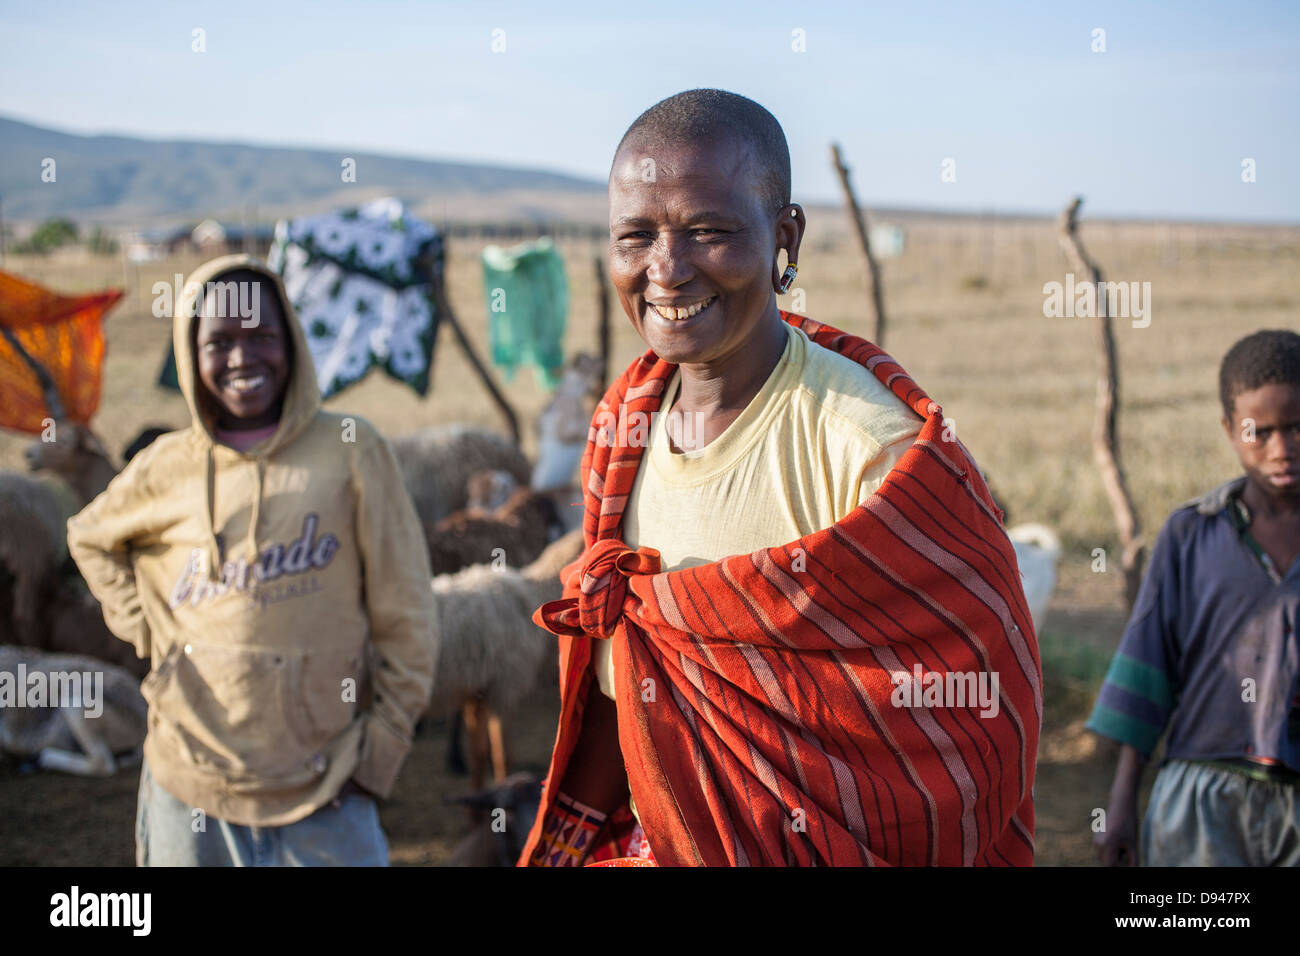 Maasai woman and her family in the Rift Vally of Kenya - Stock Image